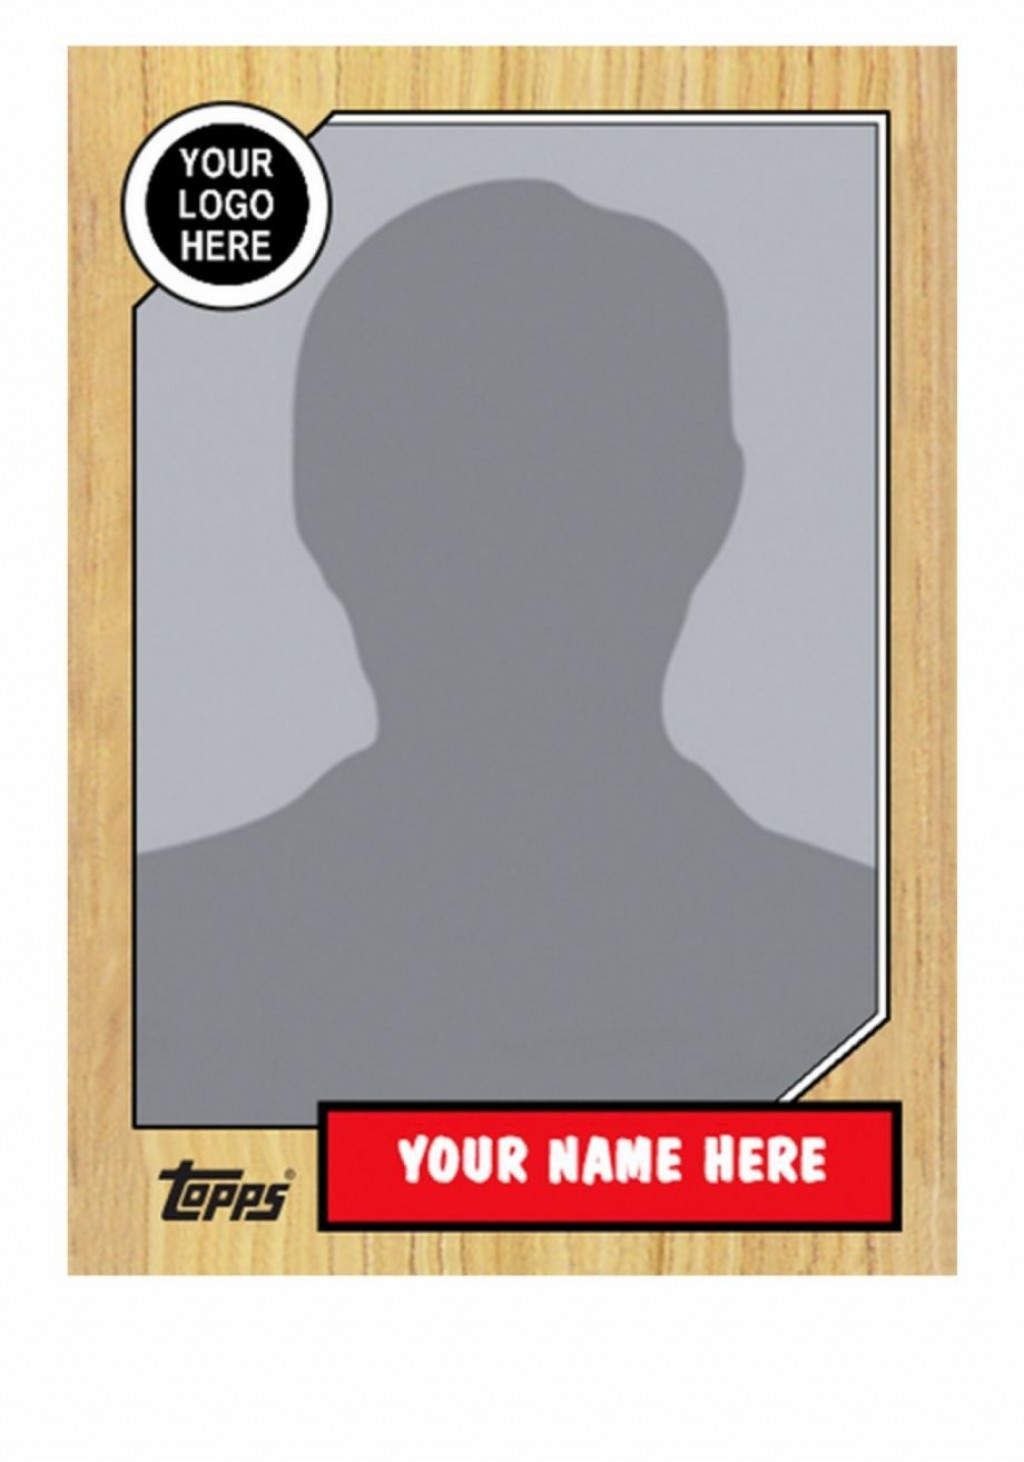 002 Unbelievable Baseball Card Template Photoshop Picture  Topp FreeLarge